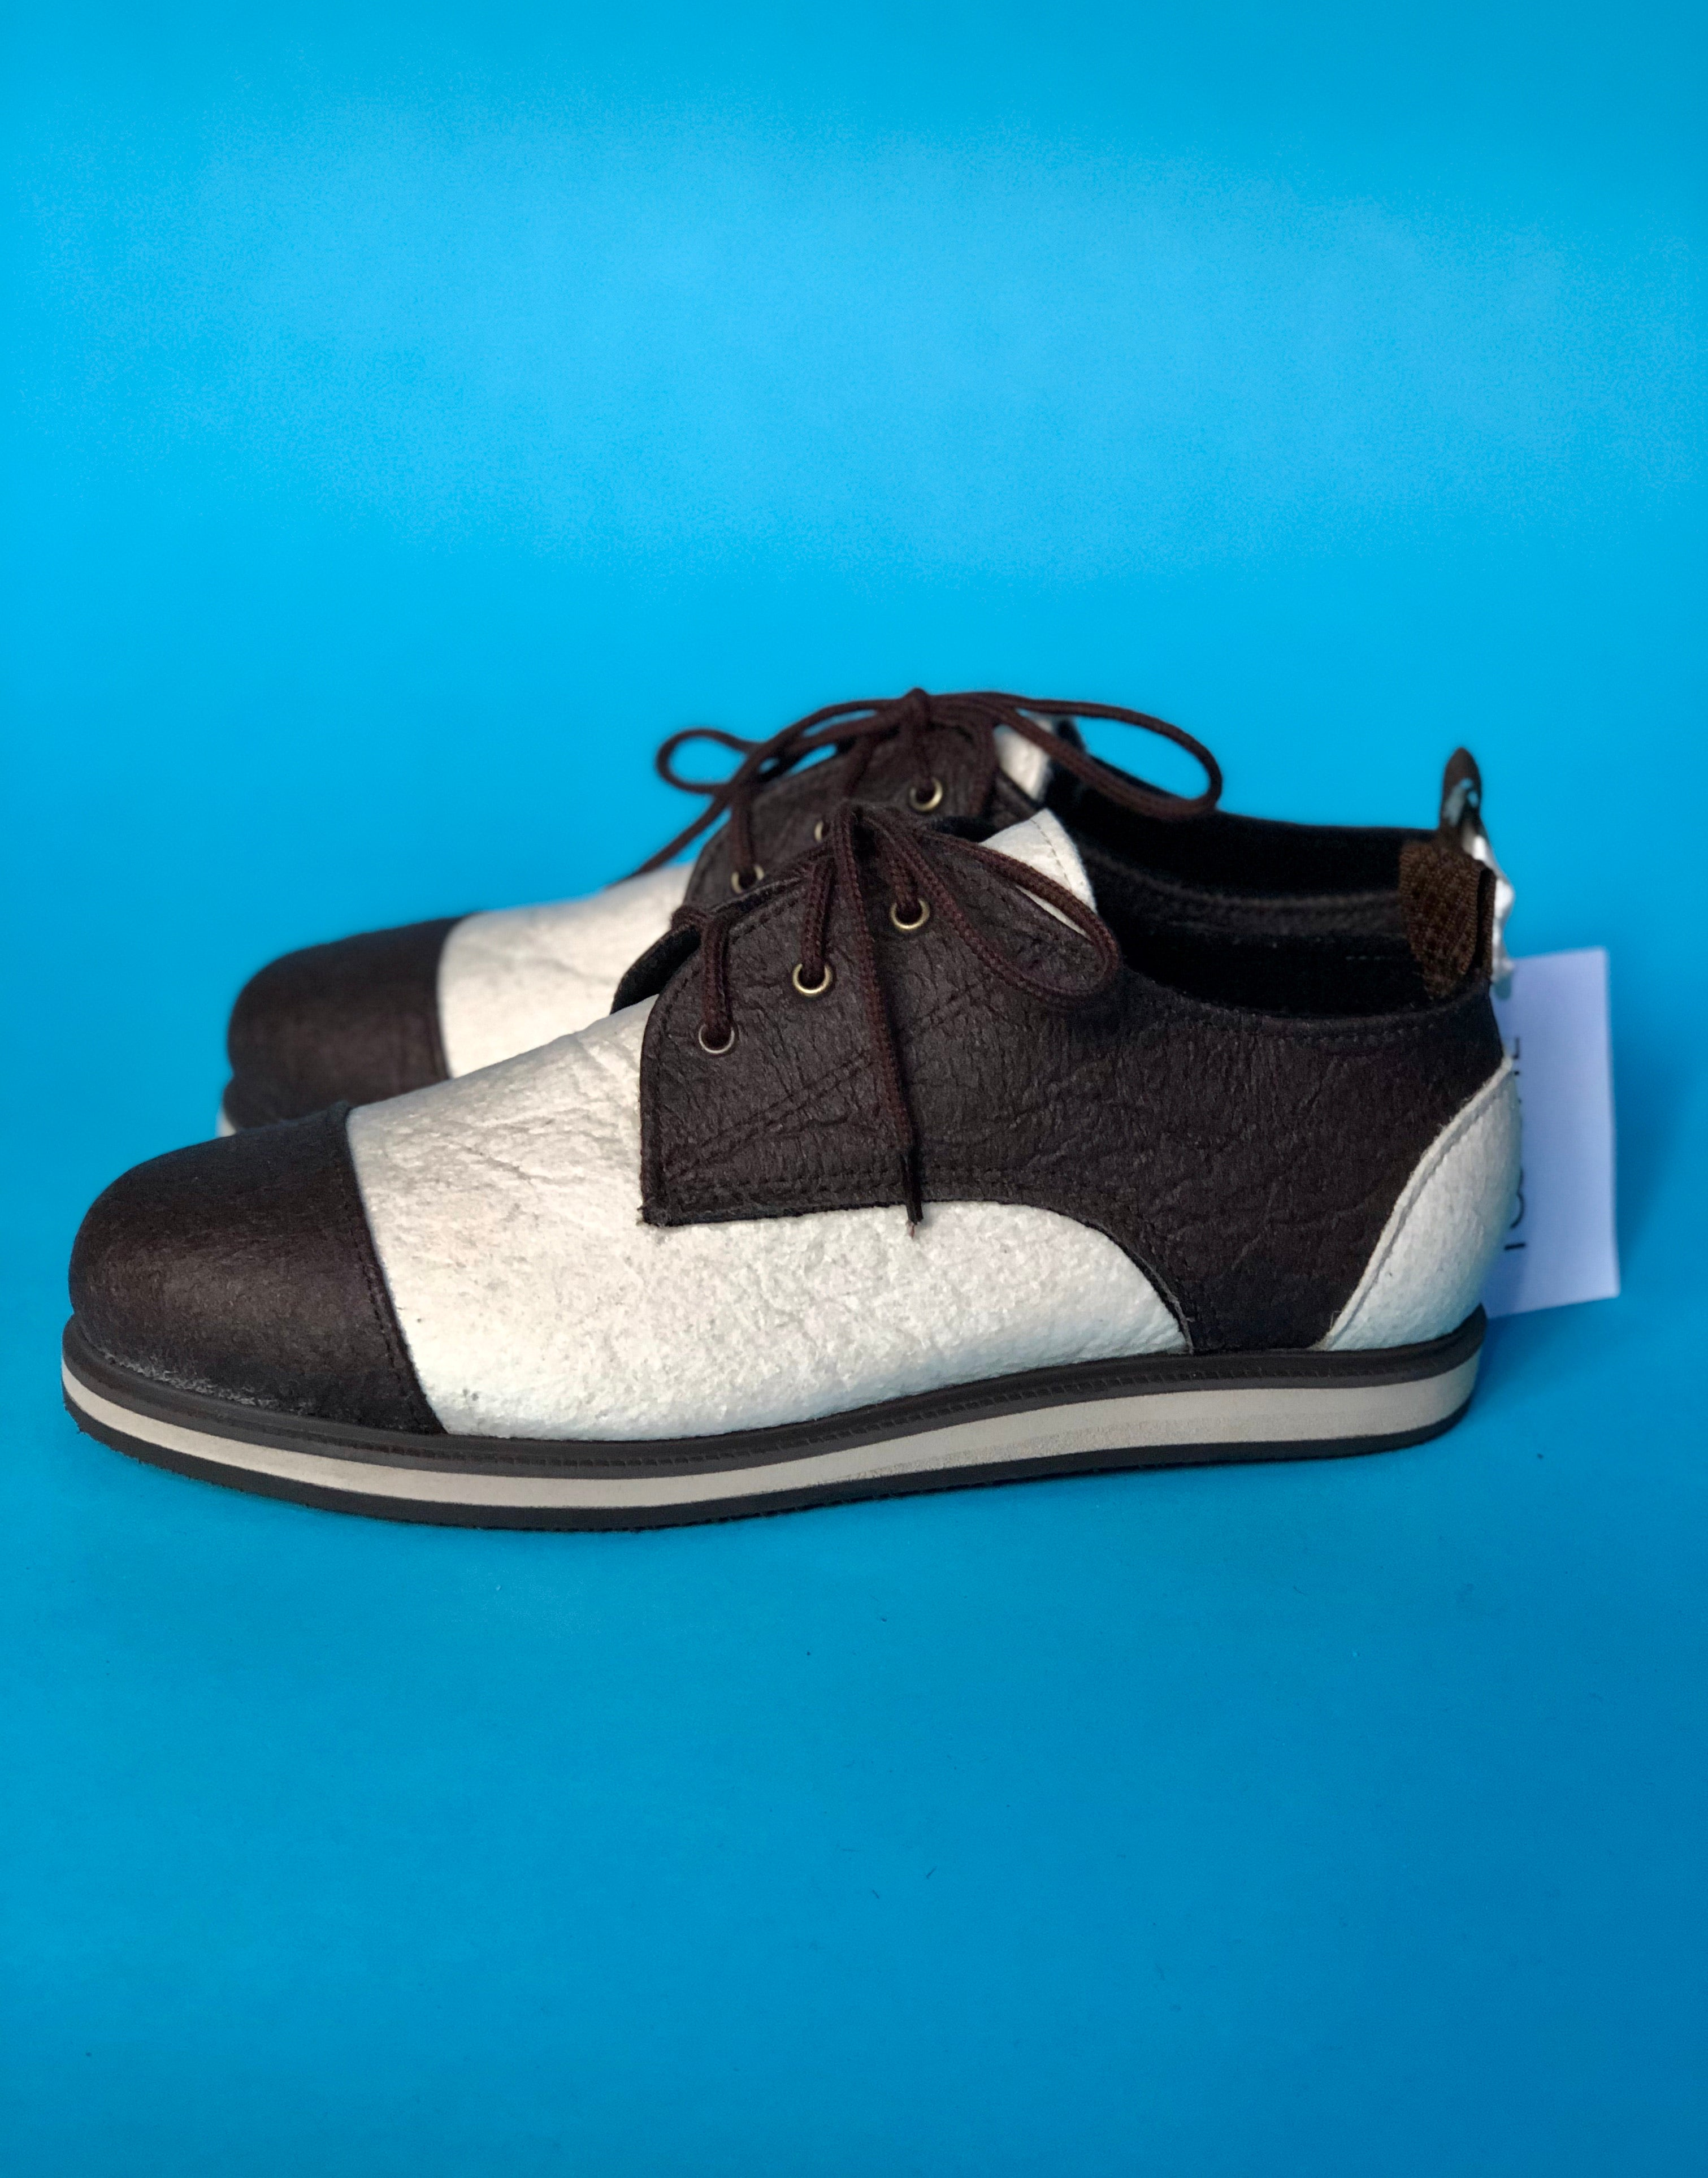 VEGAN DERBY (sizes 37, 38, 40, 41)